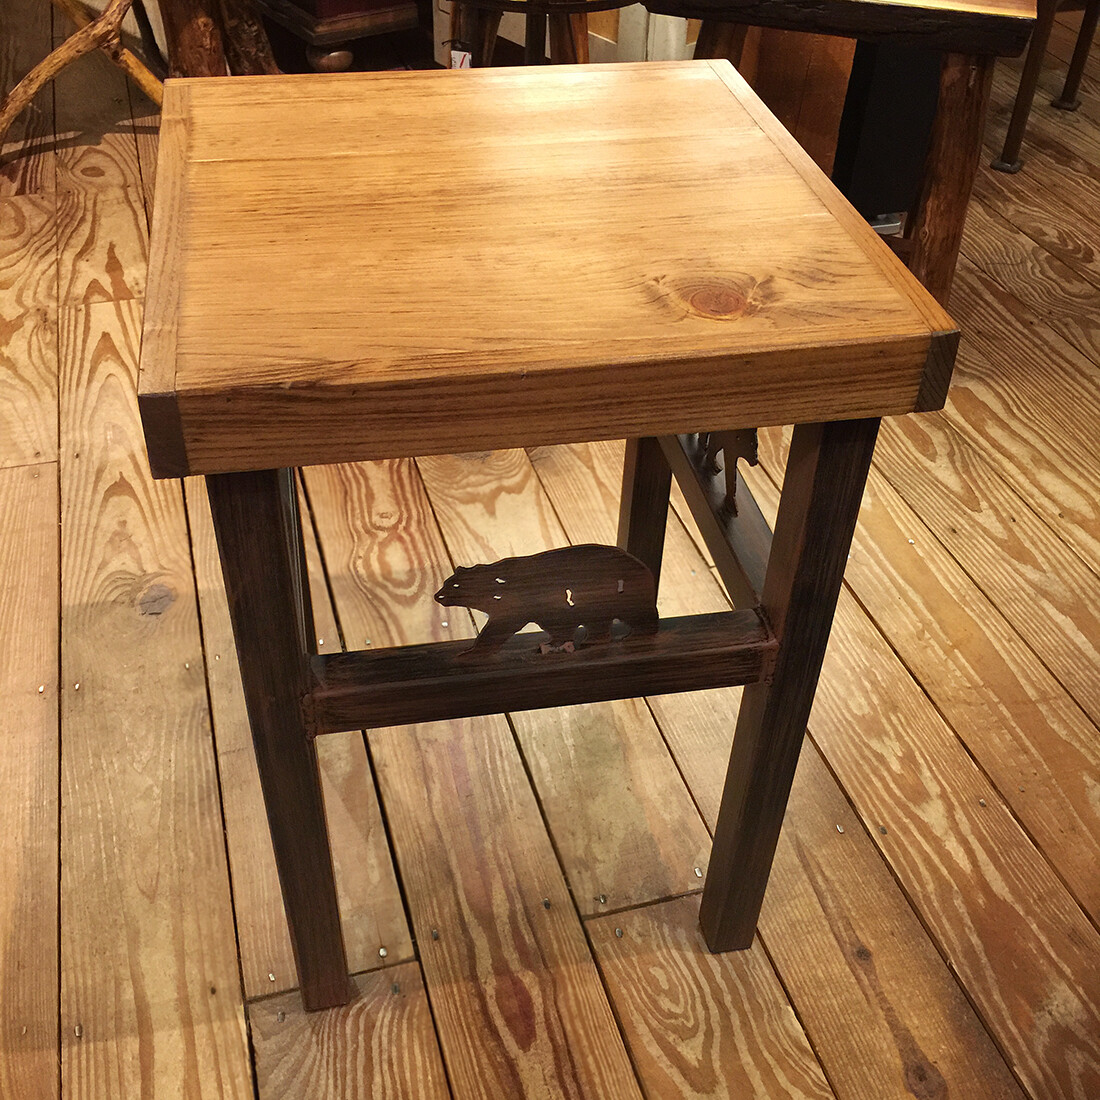 End Table with Bear Accent and Deck Board Top